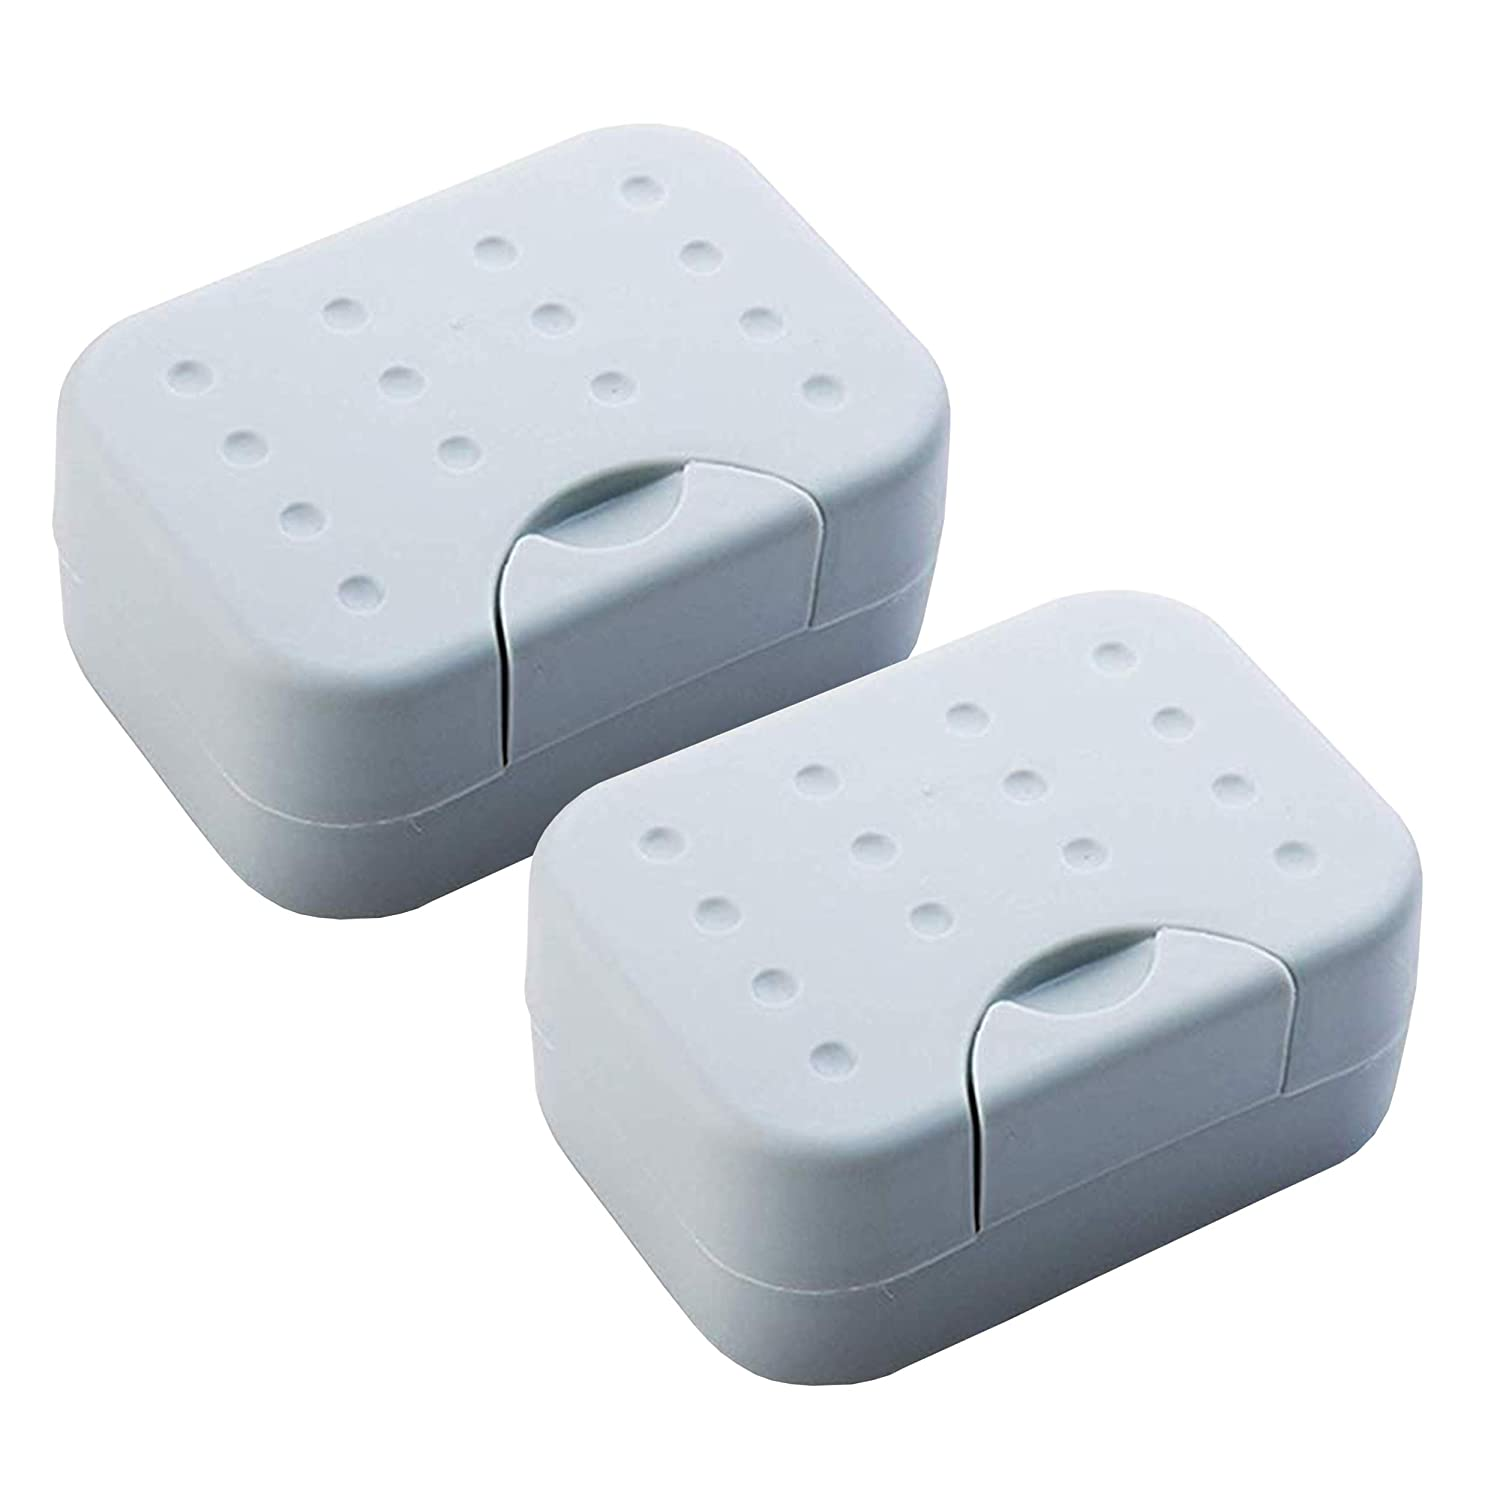 2 Sets Soap Case Holder Container Box dishes Home Outdoor Hiking Camping Travel-White IZTOSS